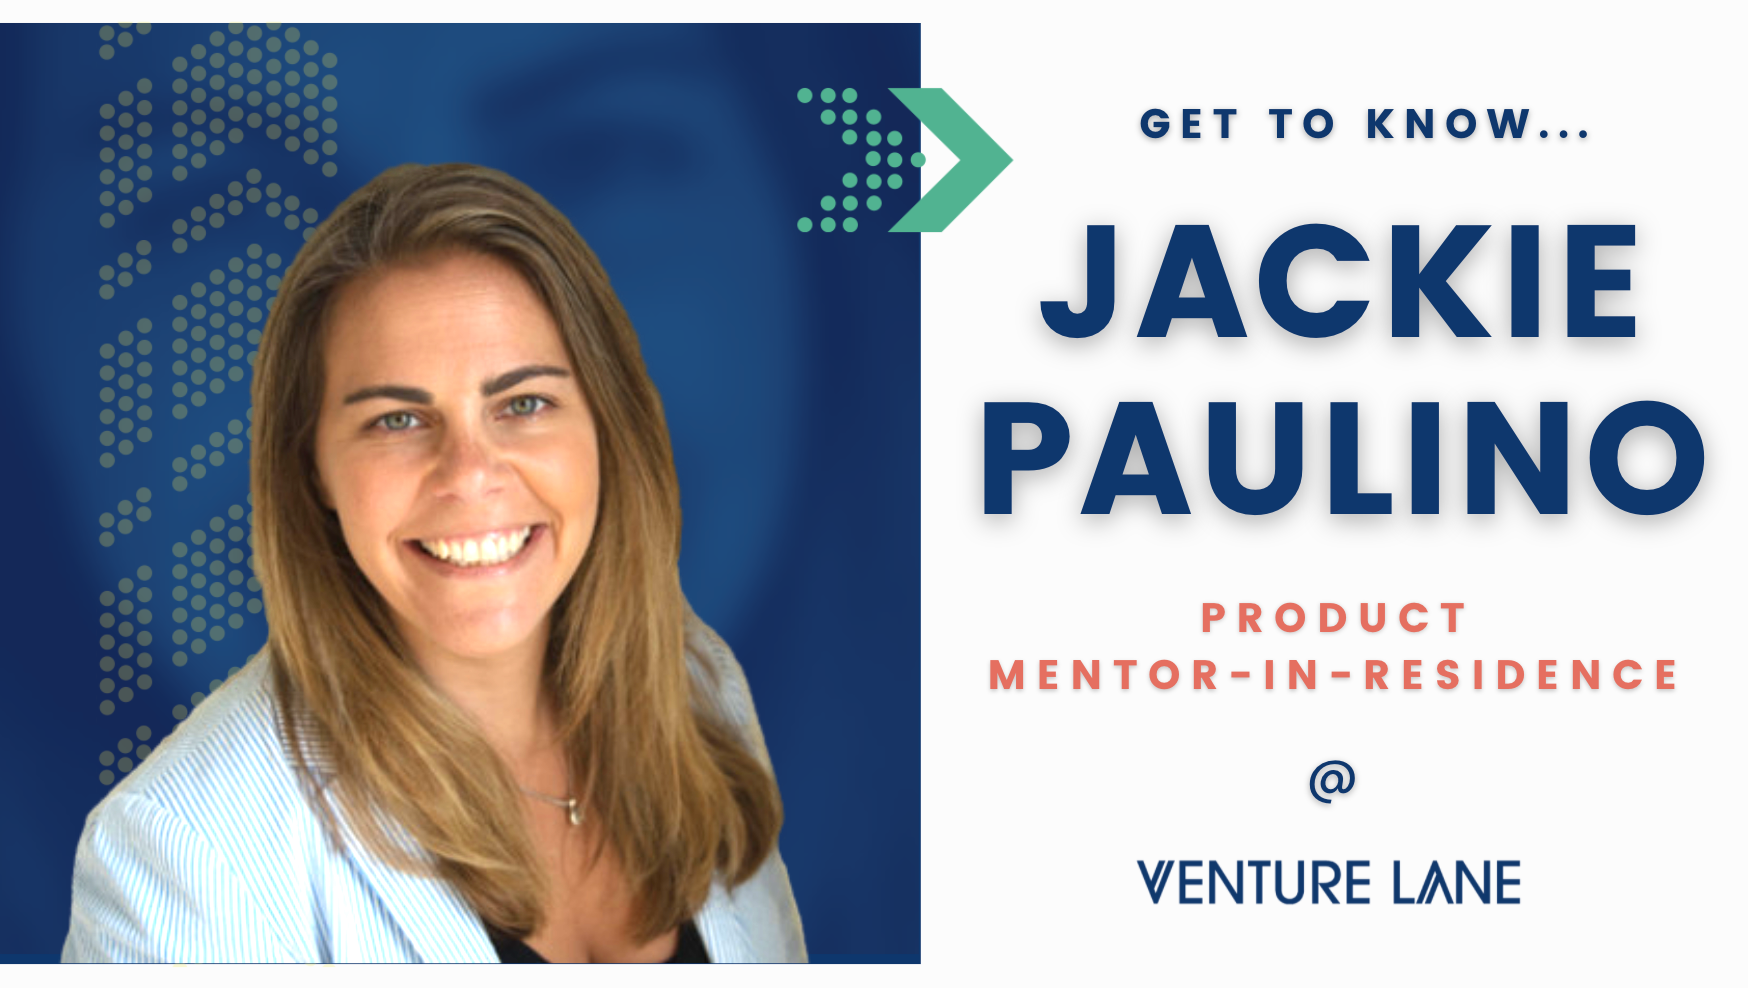 Get To Know Jackie Paulino, Product Mentor-in-Residence at Venture Lane